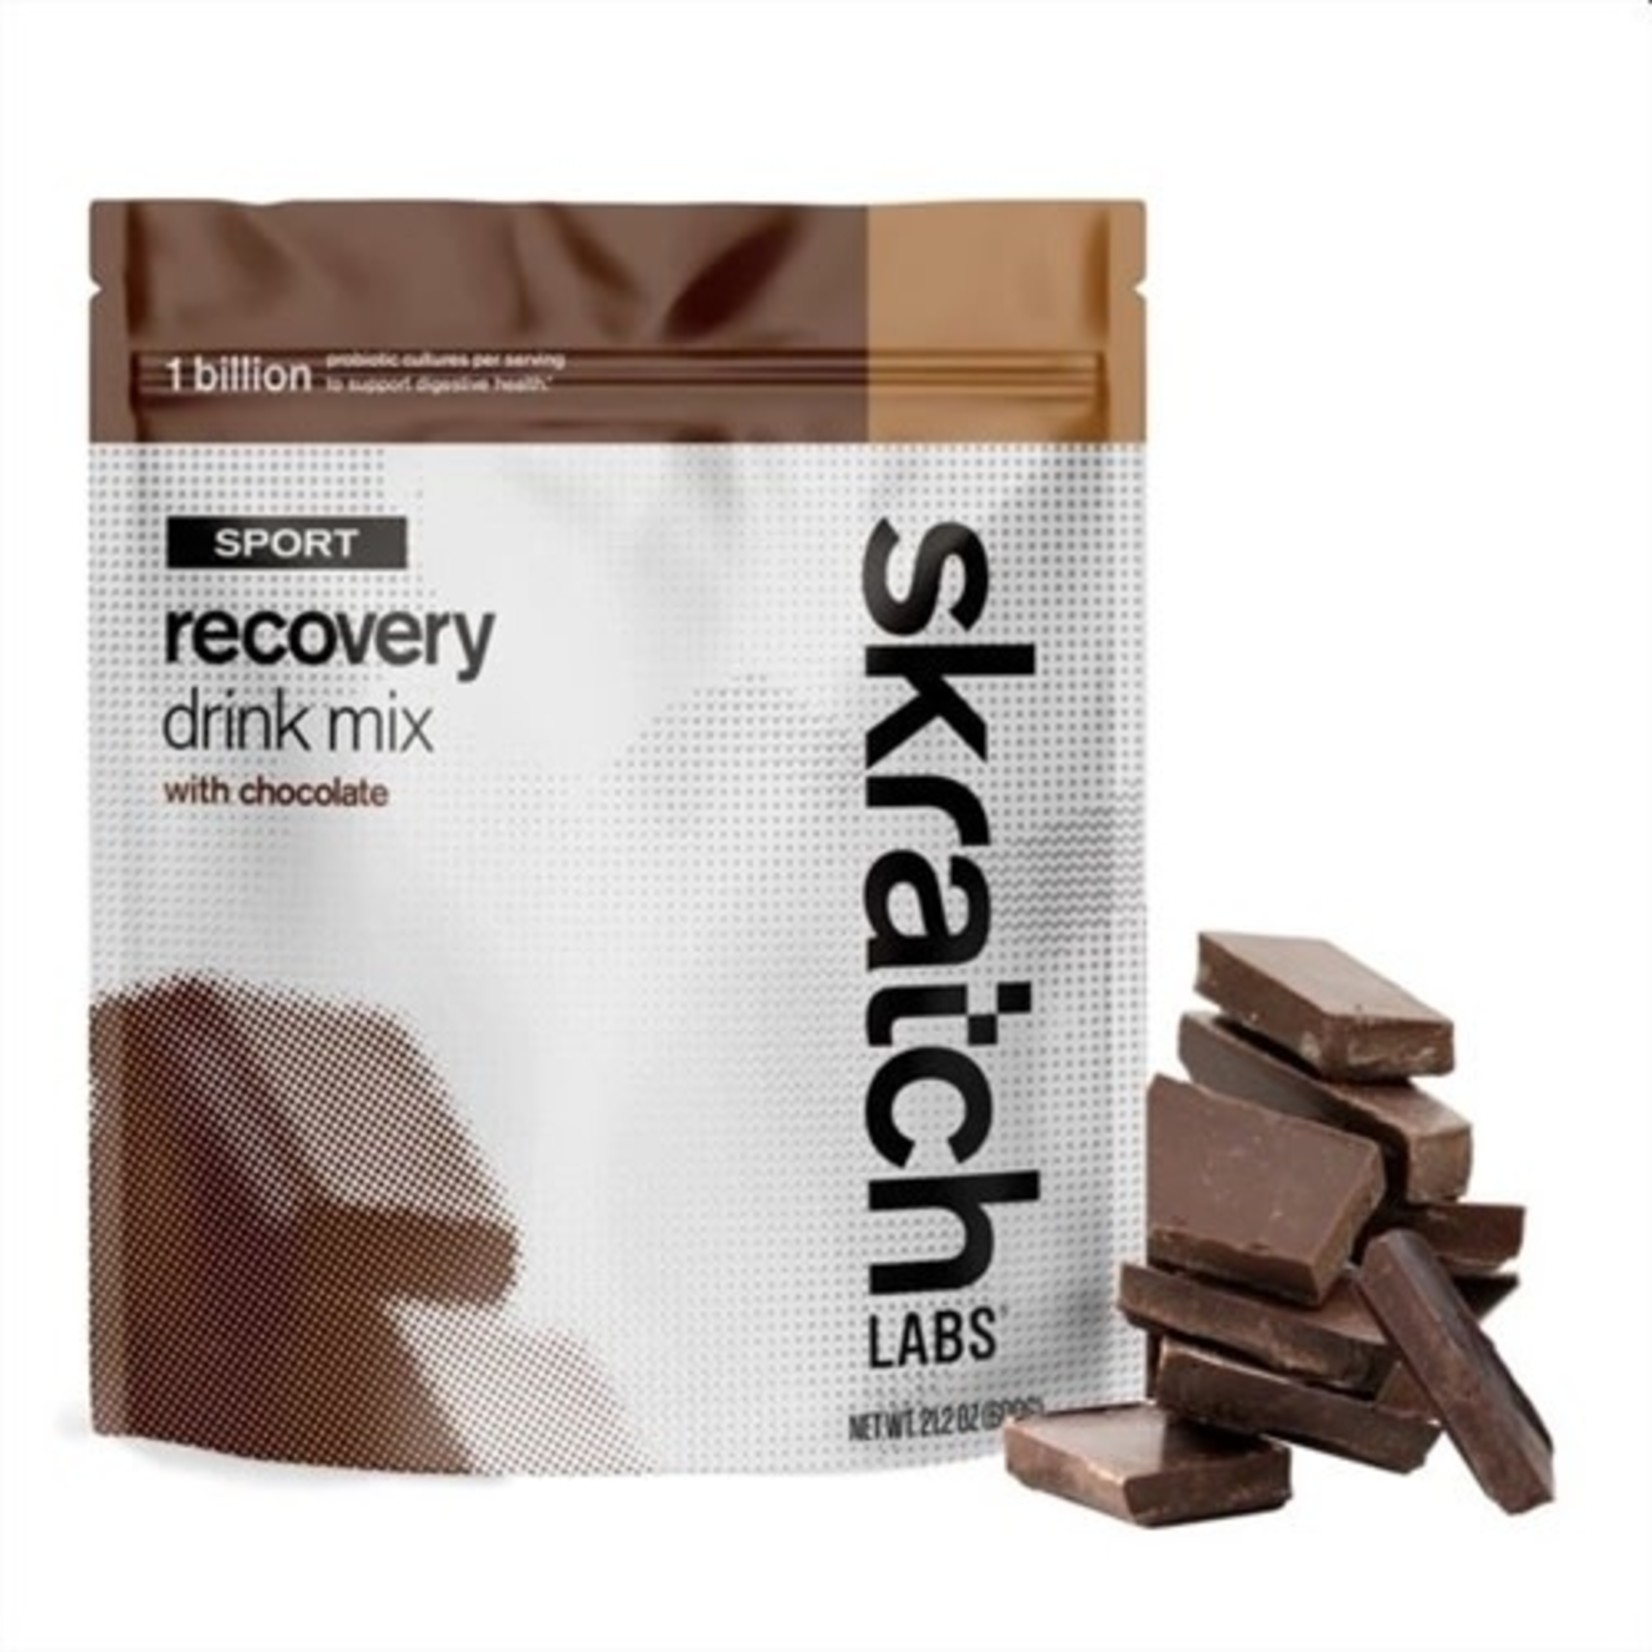 Skratch Labs Skratch Labs Sport Recovery Drink Mix, Chocolate, 600g